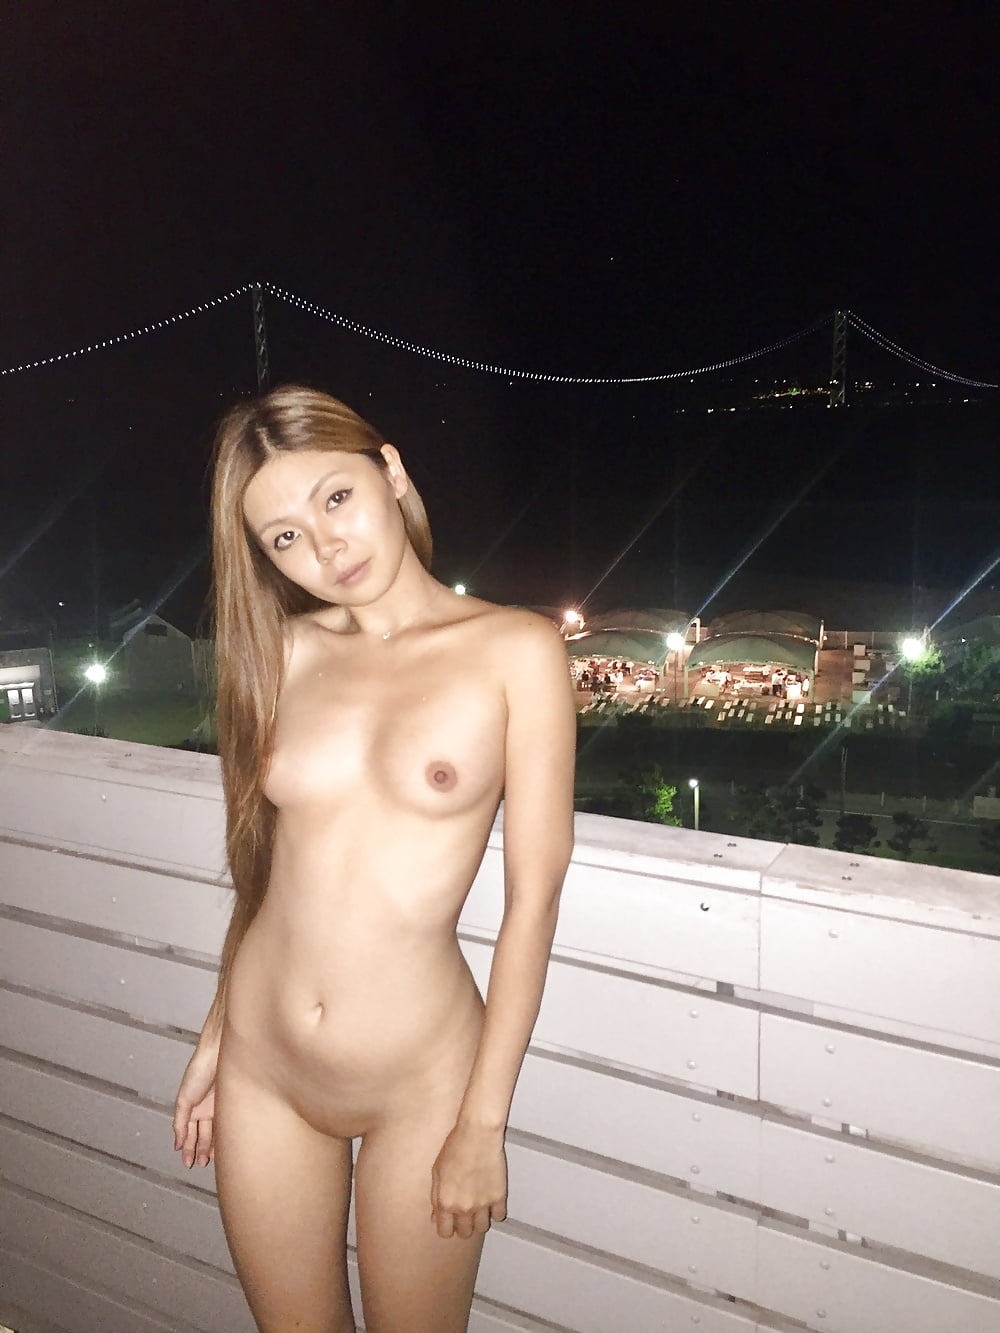 Japanese amateur outdoor 1 - 25 Collectio Japanese amateur outdoor